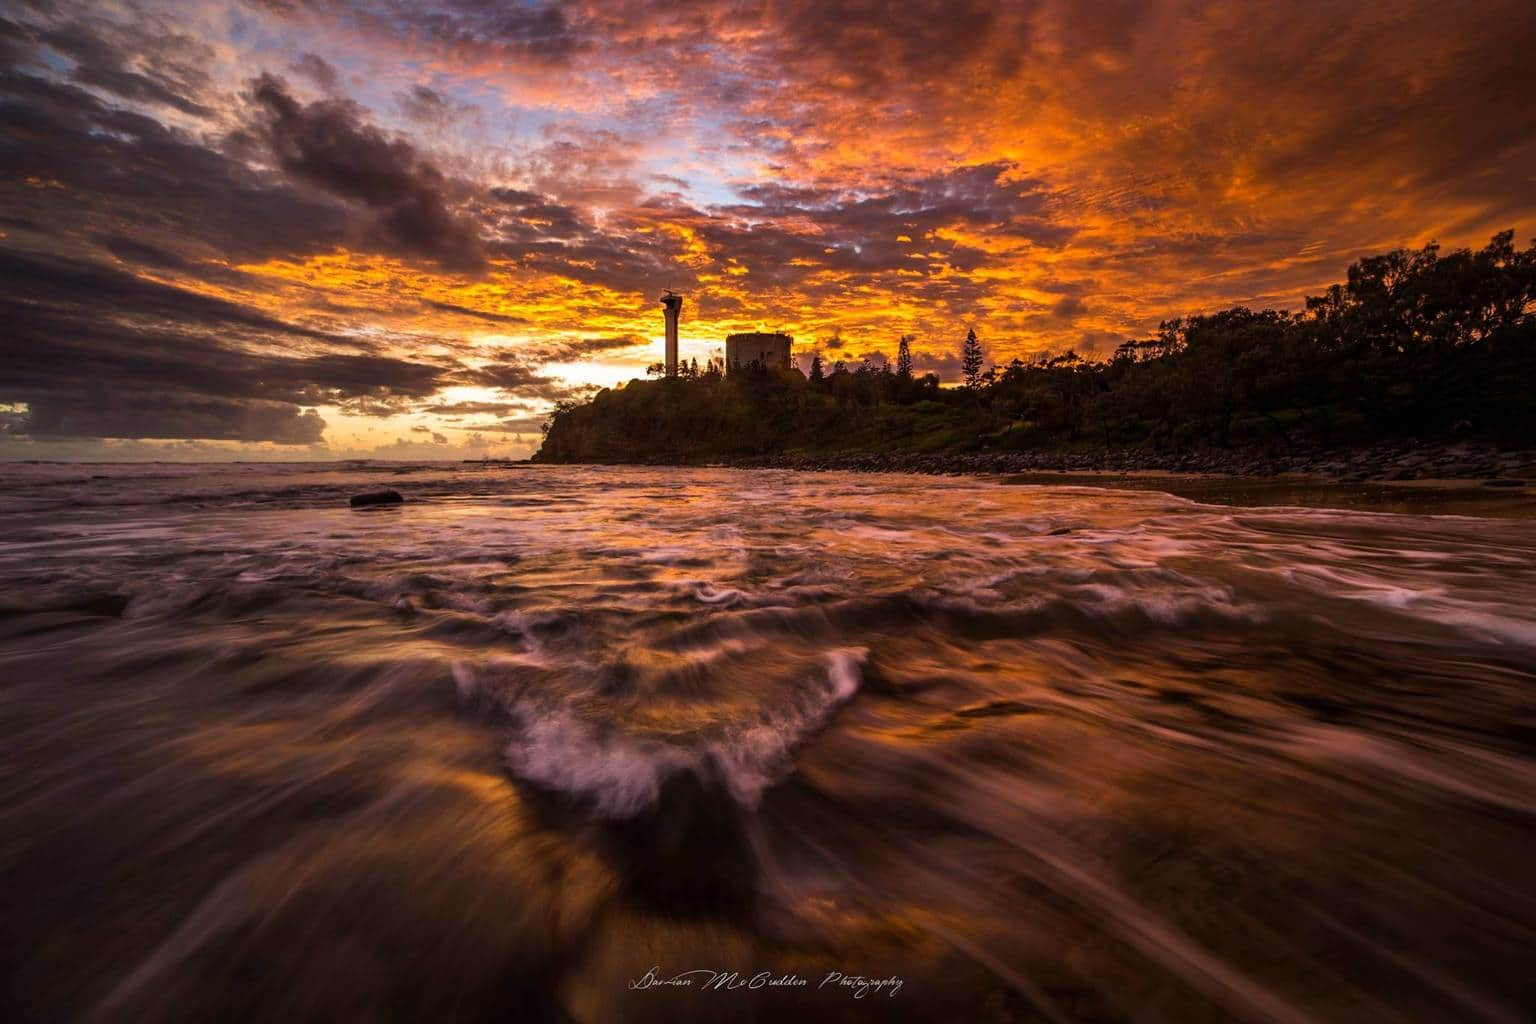 I shot this sunrise image about 3 hours ago smile emoticon  Shot at Point Cartwright, Australia. It's the best sunrise I've ever seen.